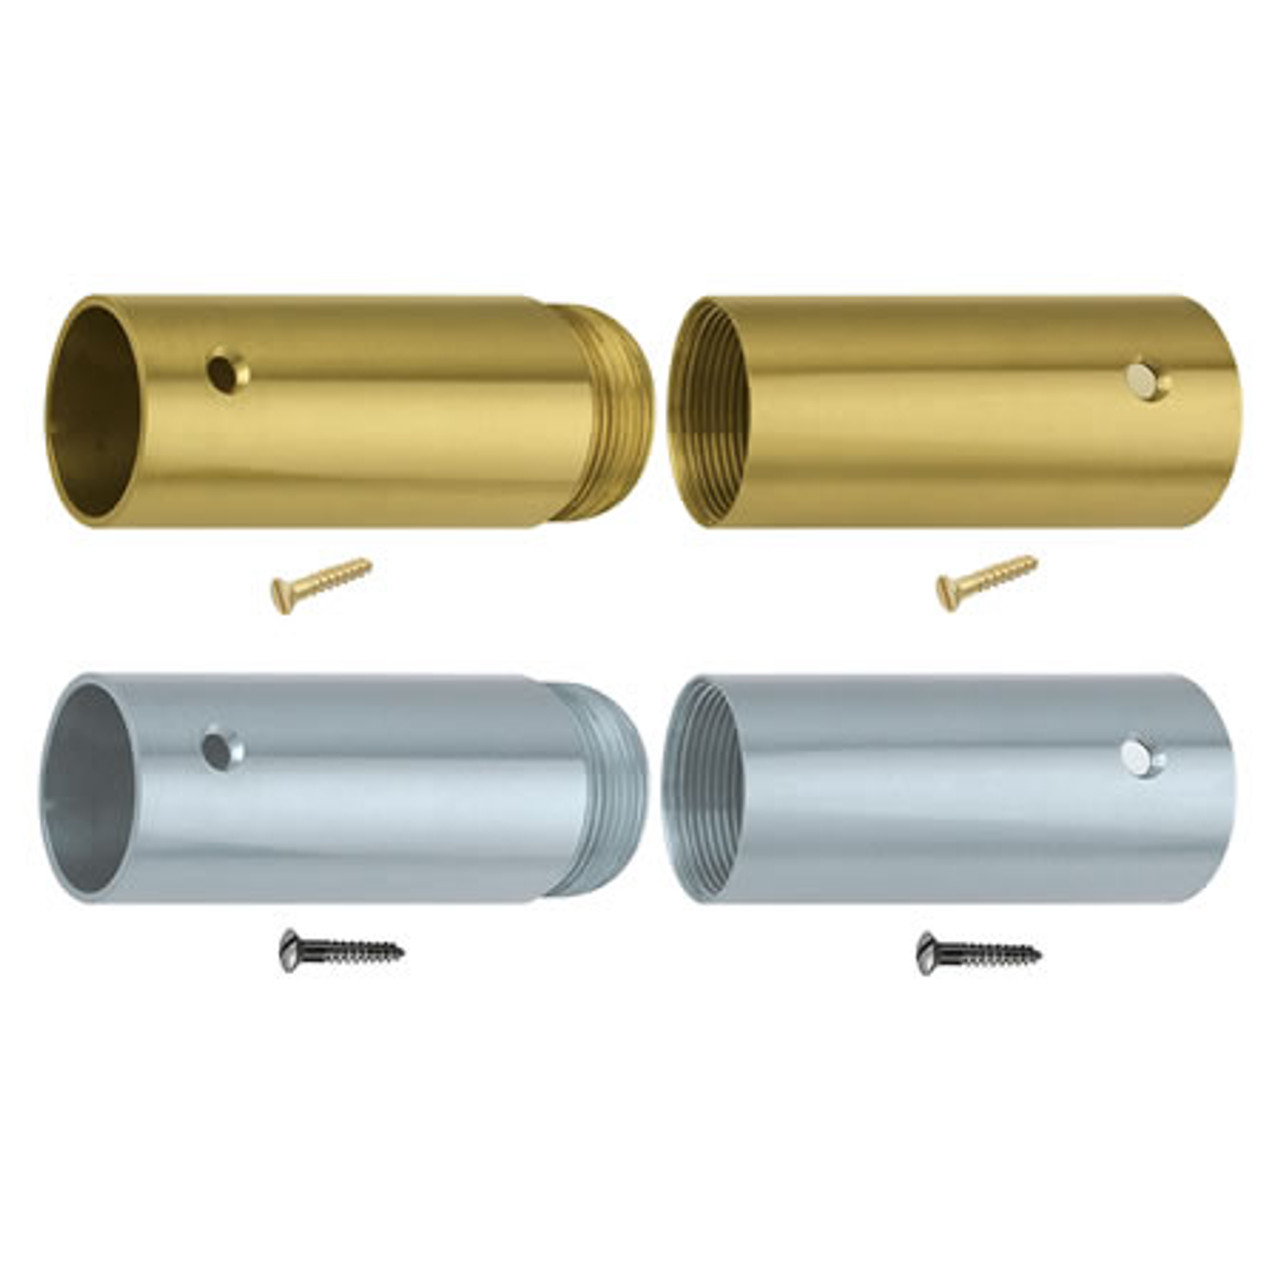 Brass Screw Joints for Wooden Poles